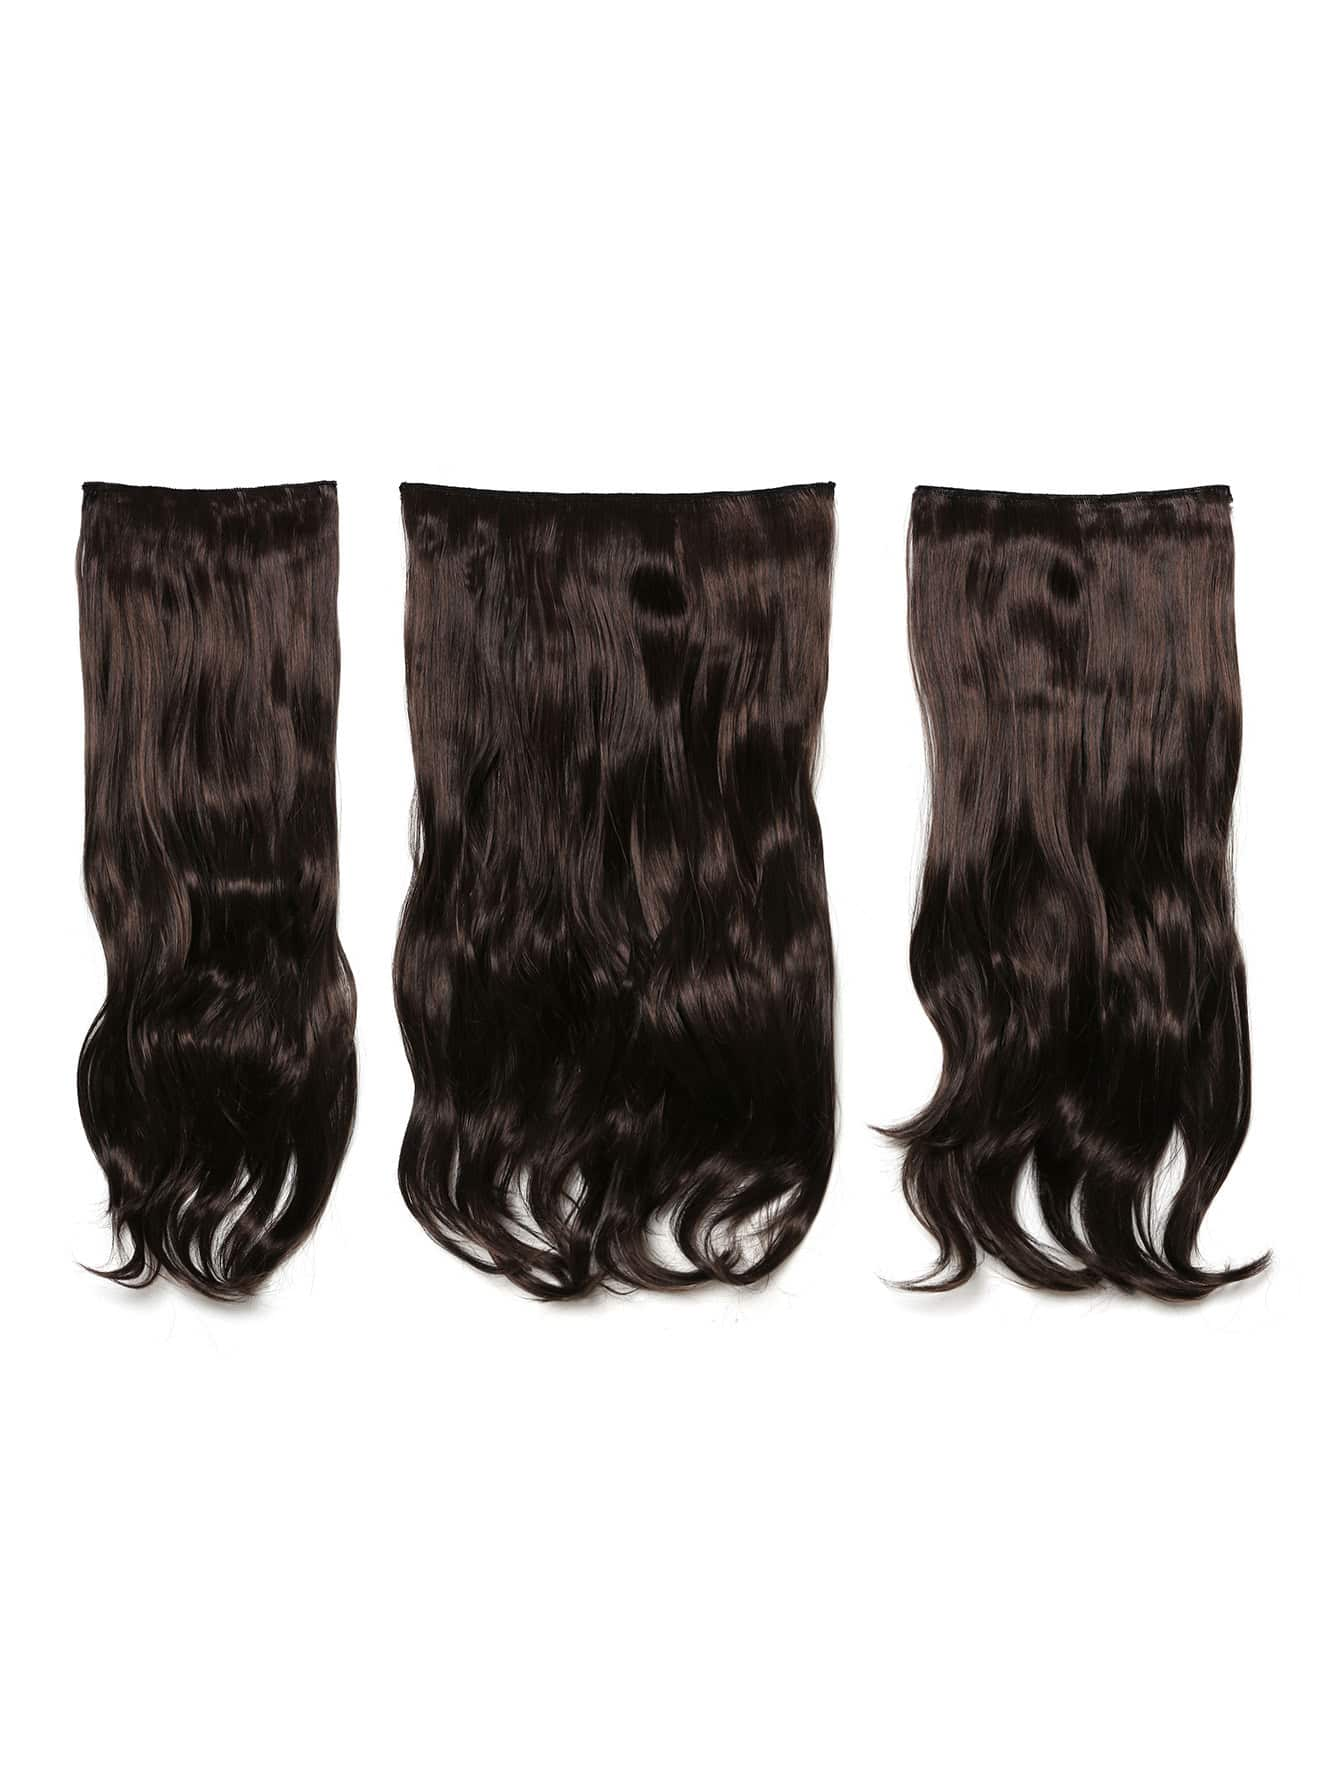 Black Cherry Clip In Soft Wave Hair Extension 3pcs black cherry clip in soft wave hair extension 3pcs